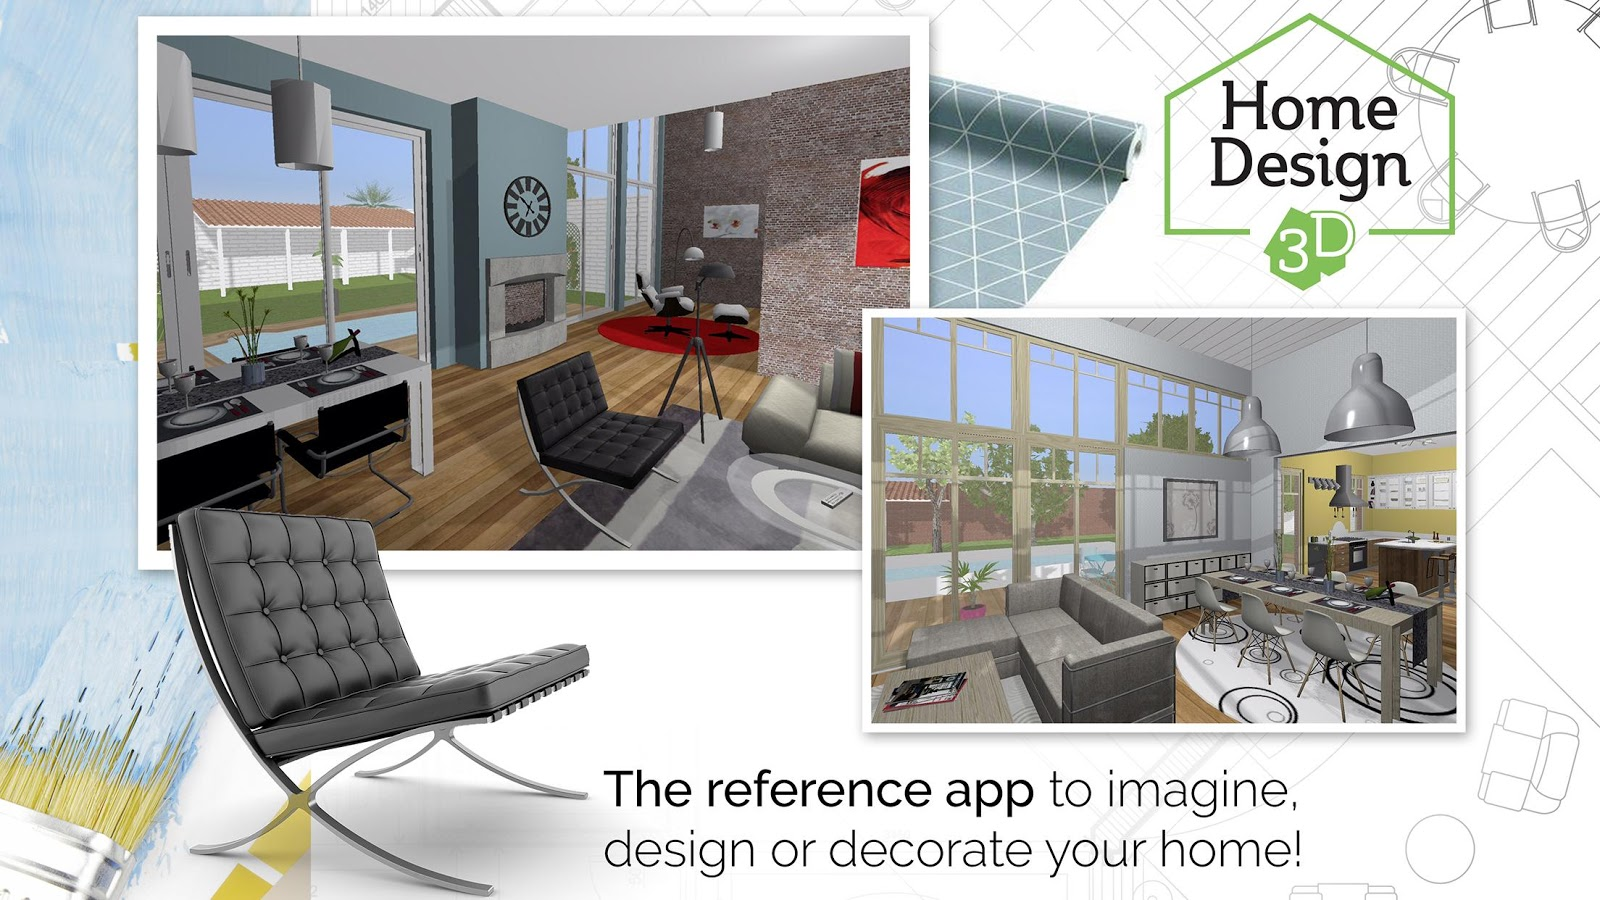 Home design 3d freemium android google play for Home decorating app